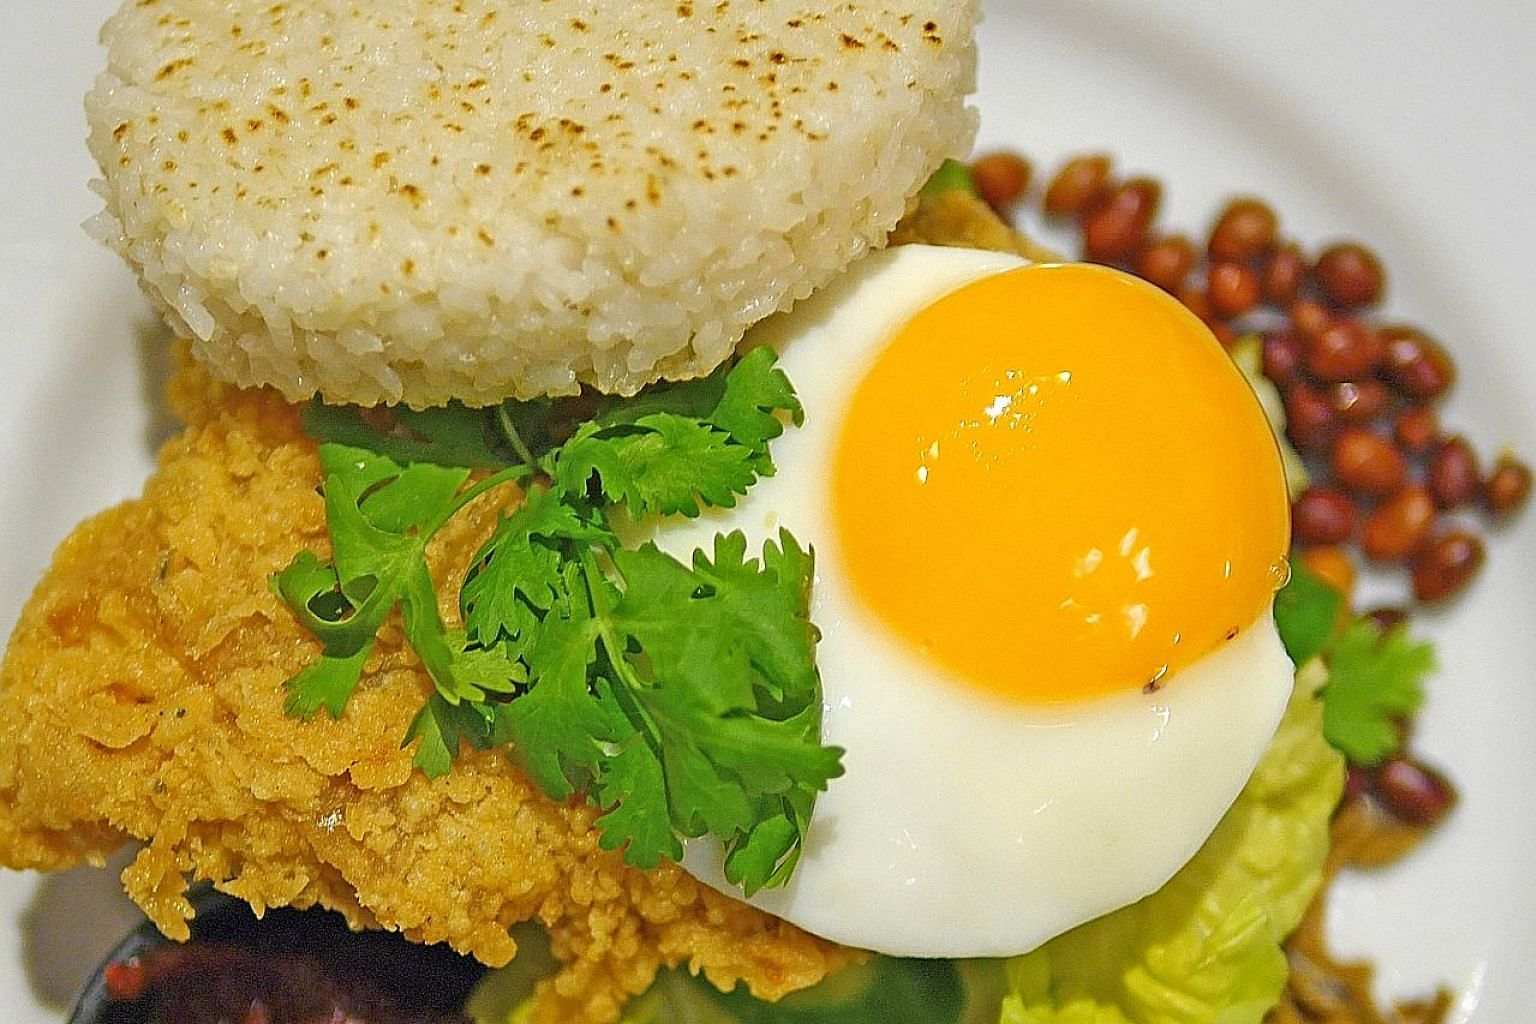 Antoinette's chef-owner Pang Kok Keong challenged himself to create a nasi lemak burger in three days.